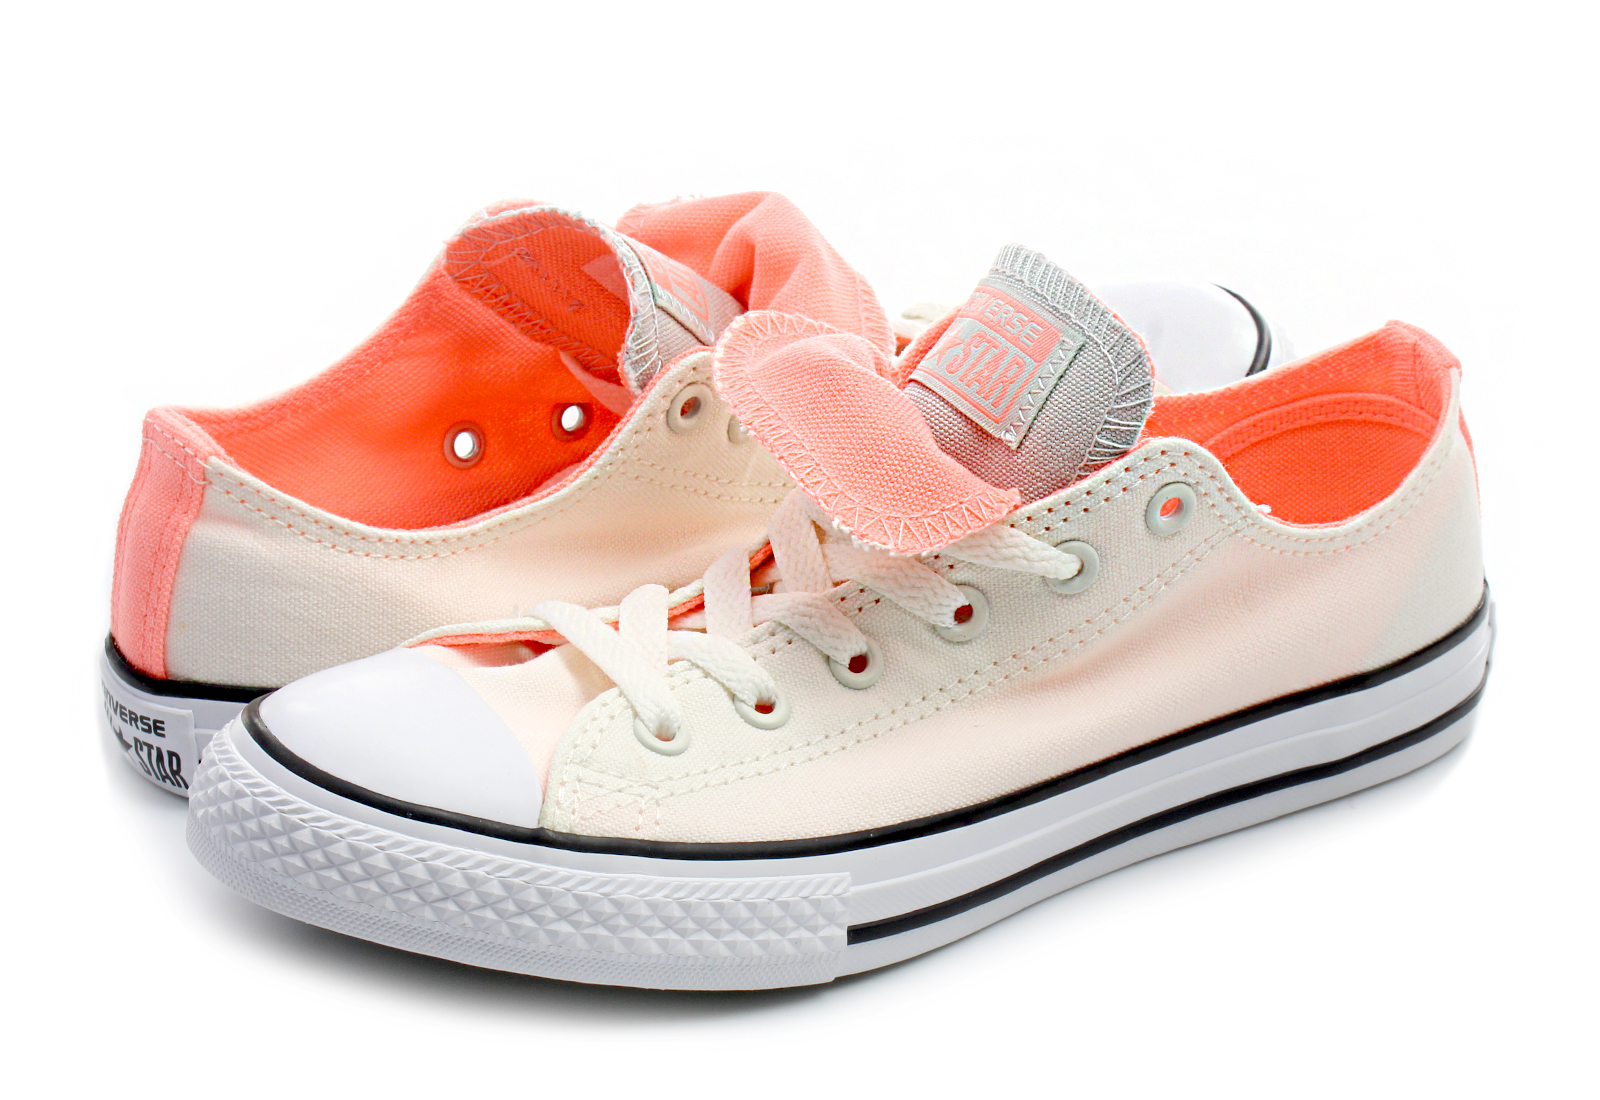 09b701d20f2d Converse Low Sneakers - Chuck Taylor All Star Double Tongue ...